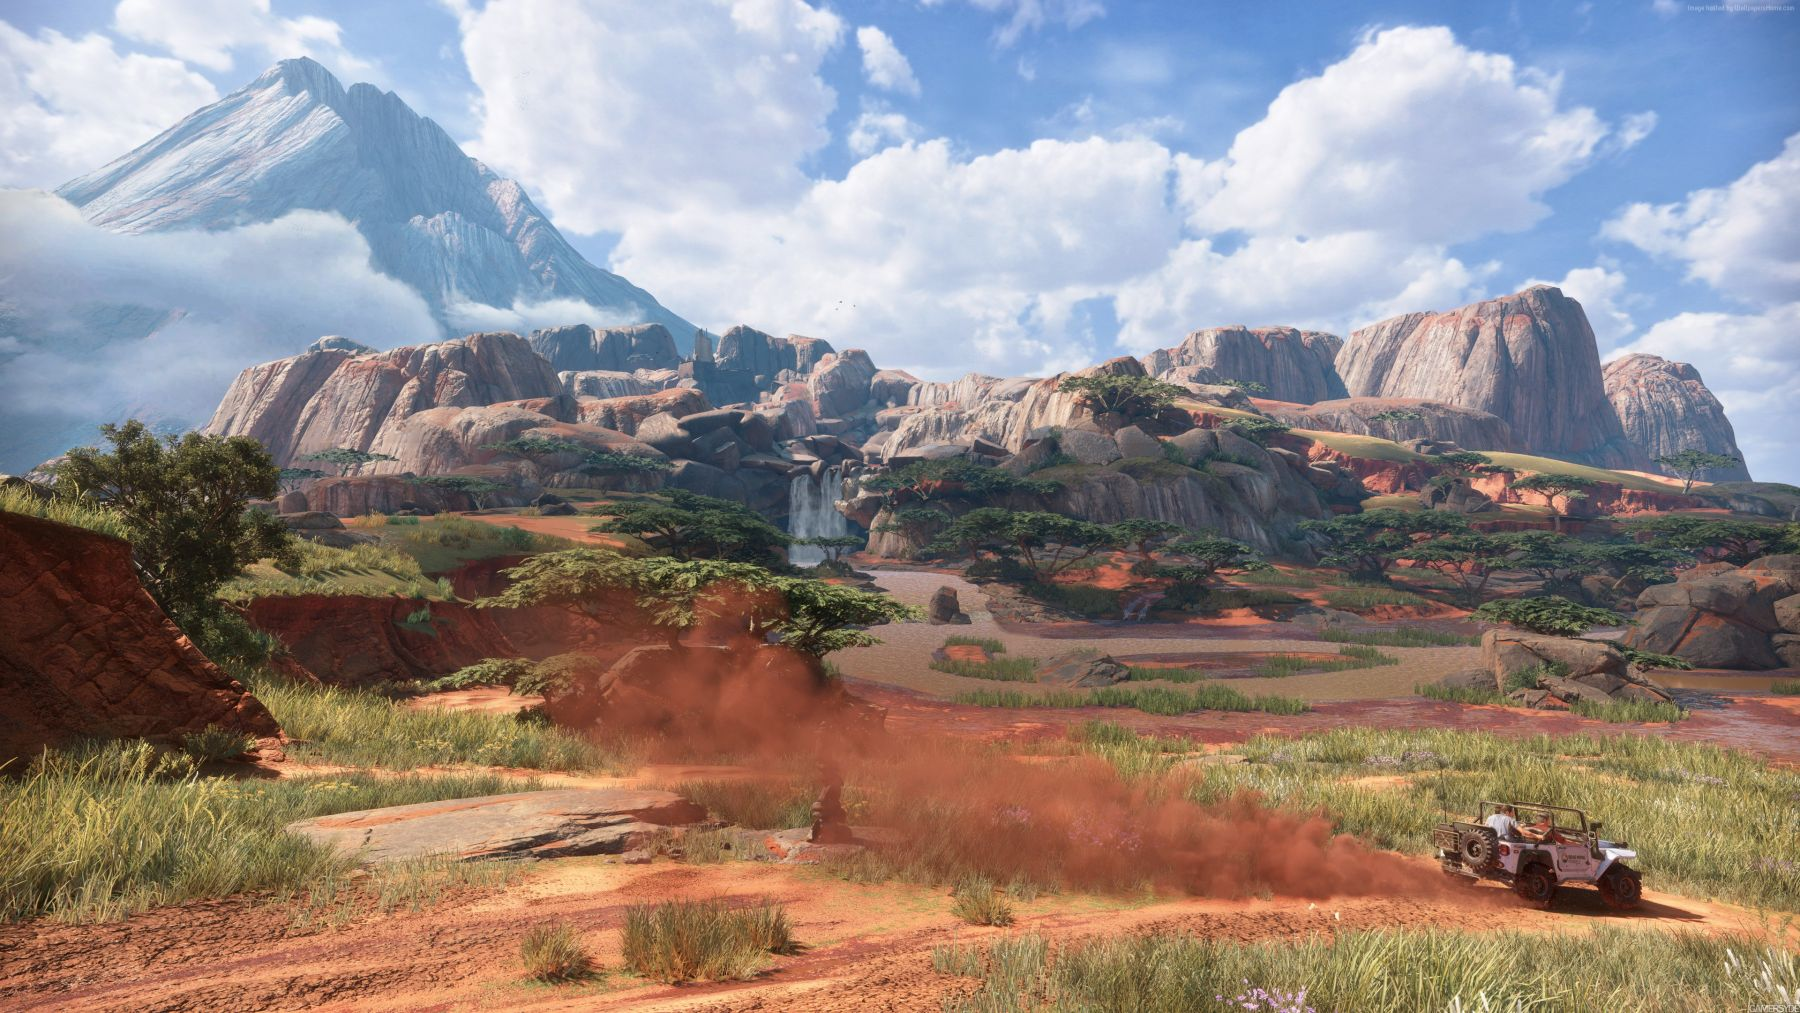 uncharted-4-a-thief-039-s-end-3840x2160-uncharted-4-a-thiefs-end-best-games-of-2016-10213